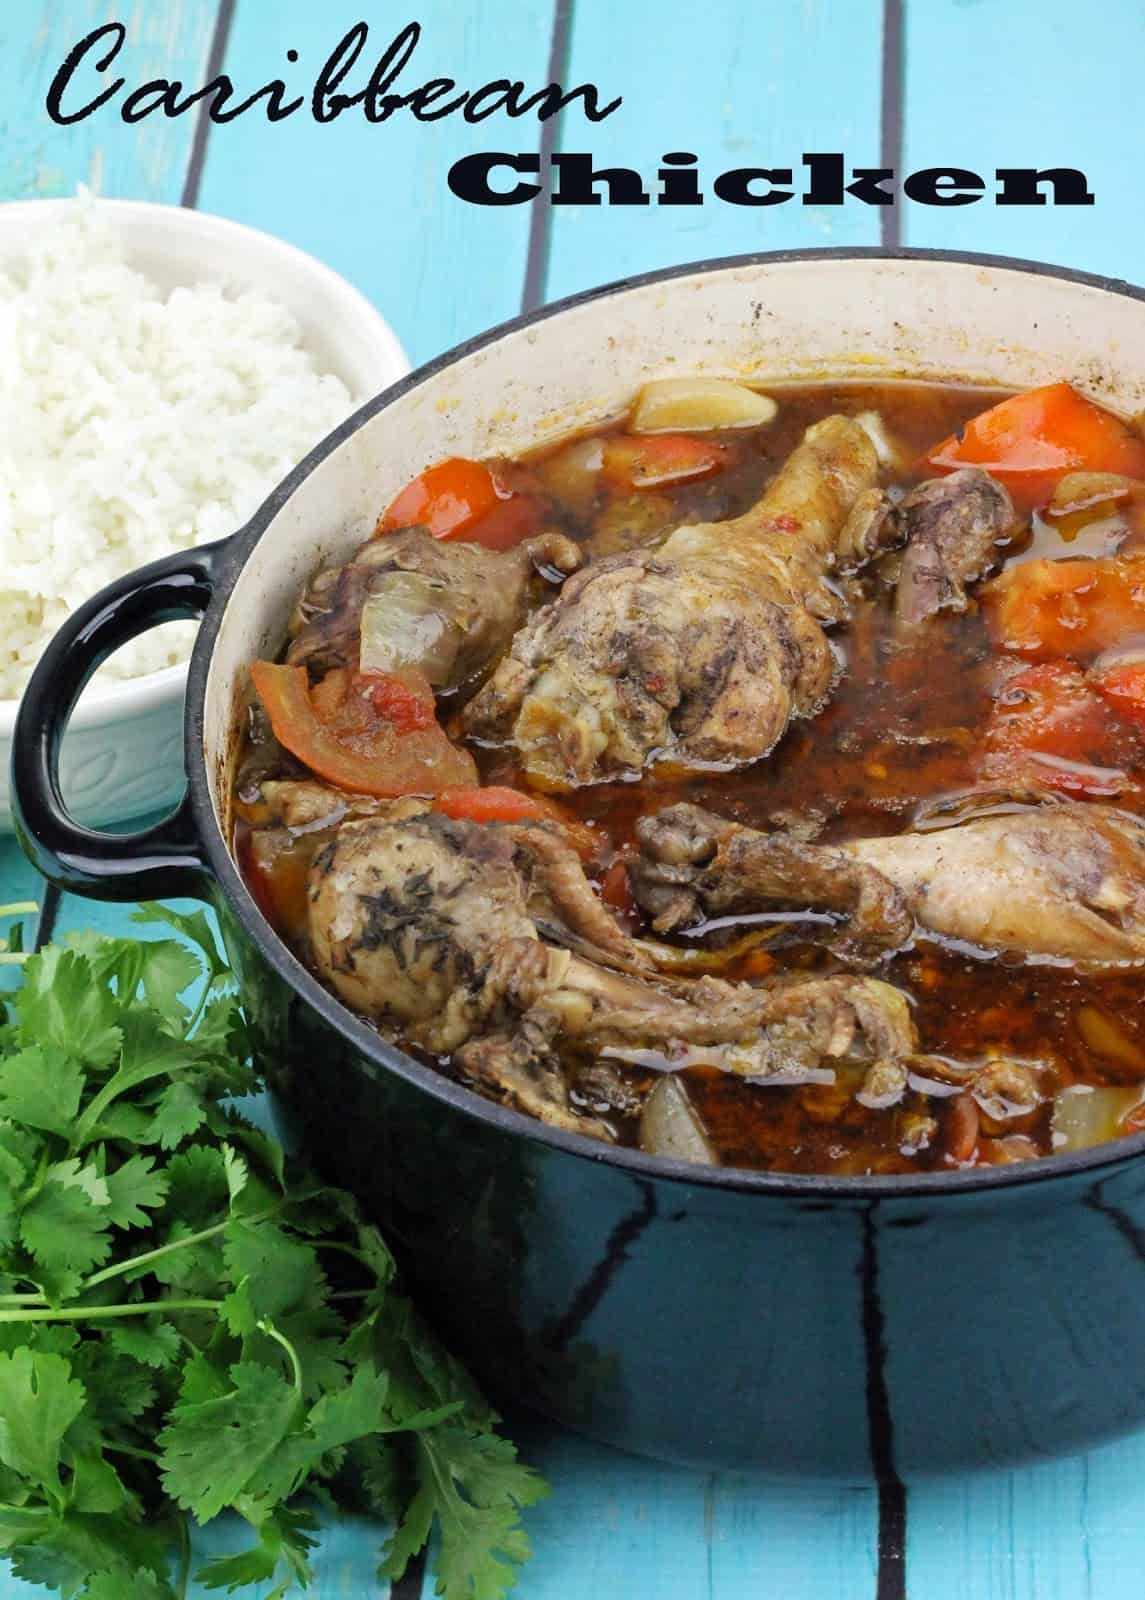 Caribbean Chicken in a blue cooking pot.